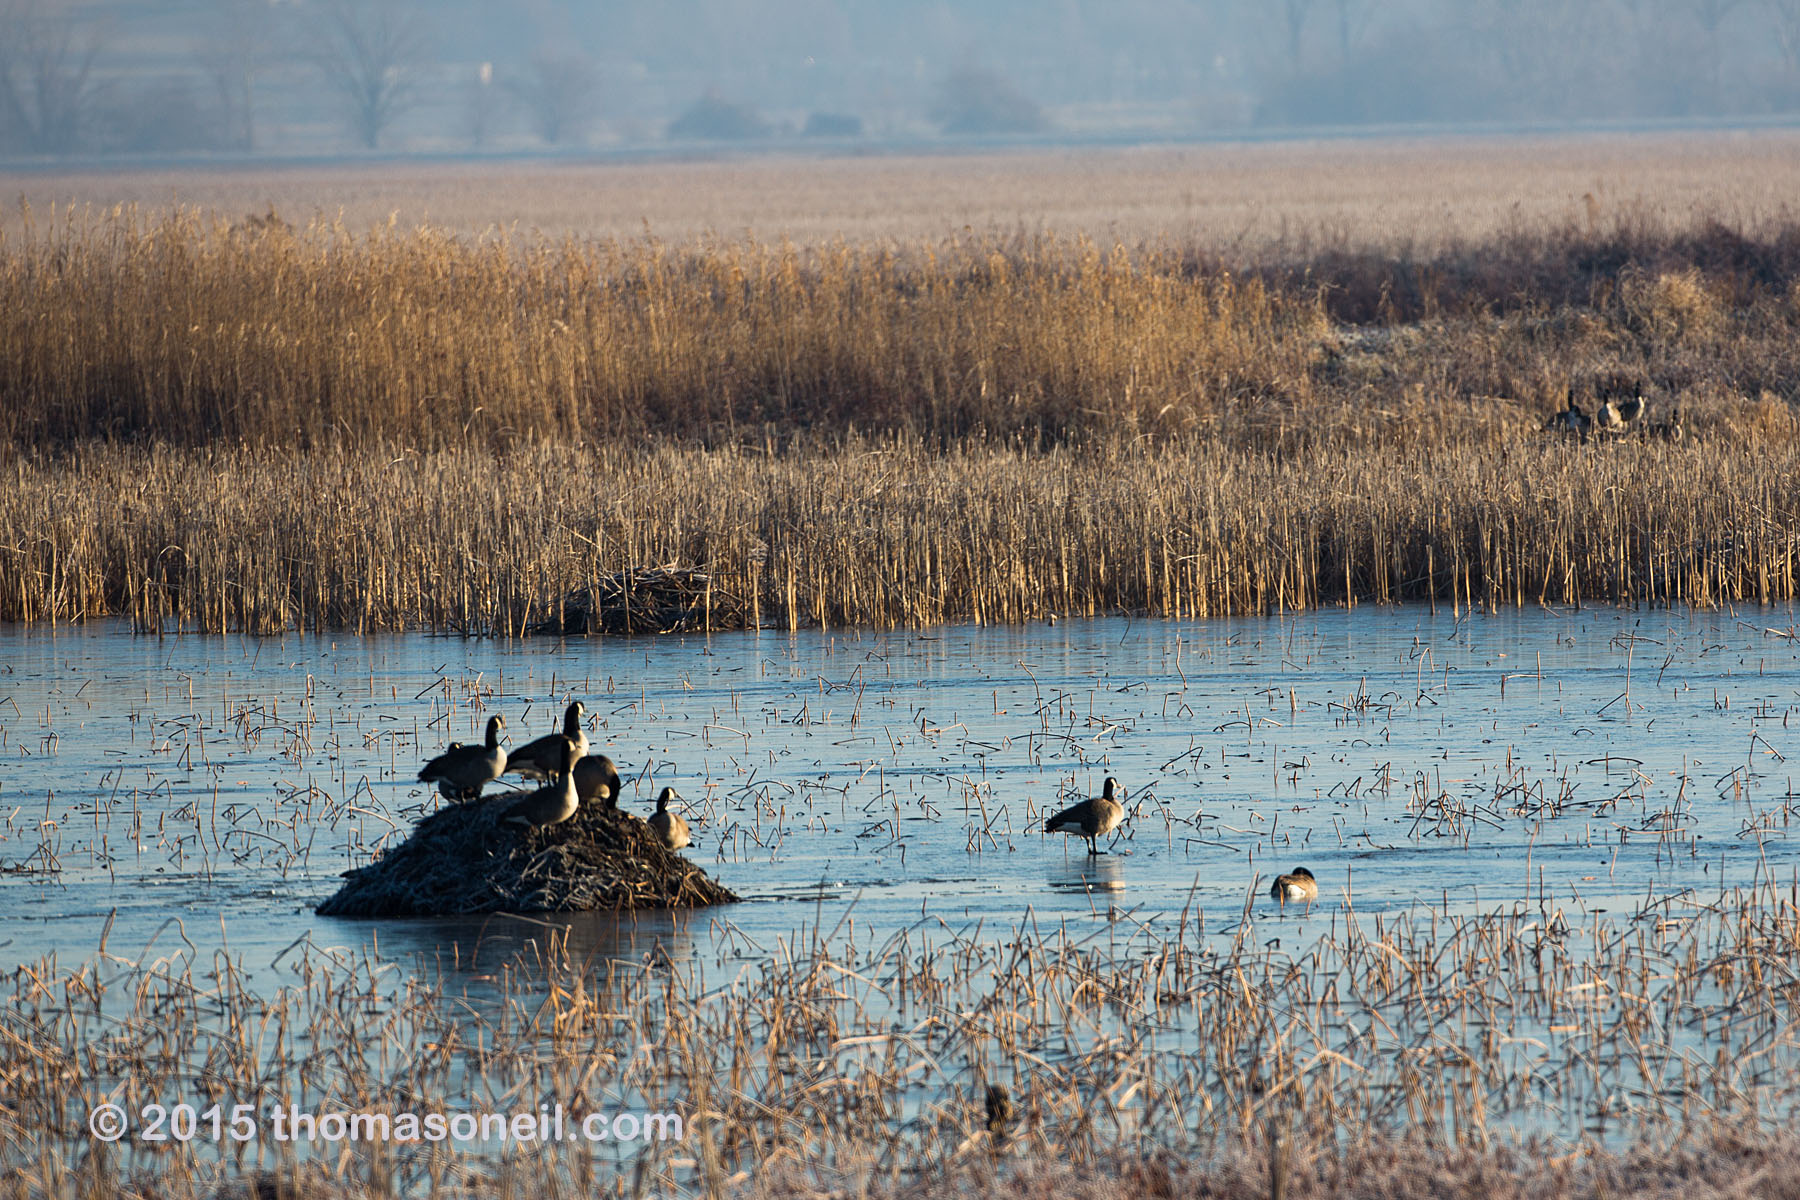 Geese, Squaw Creek NWR, Missouri, December 2015.  Click for next photo.